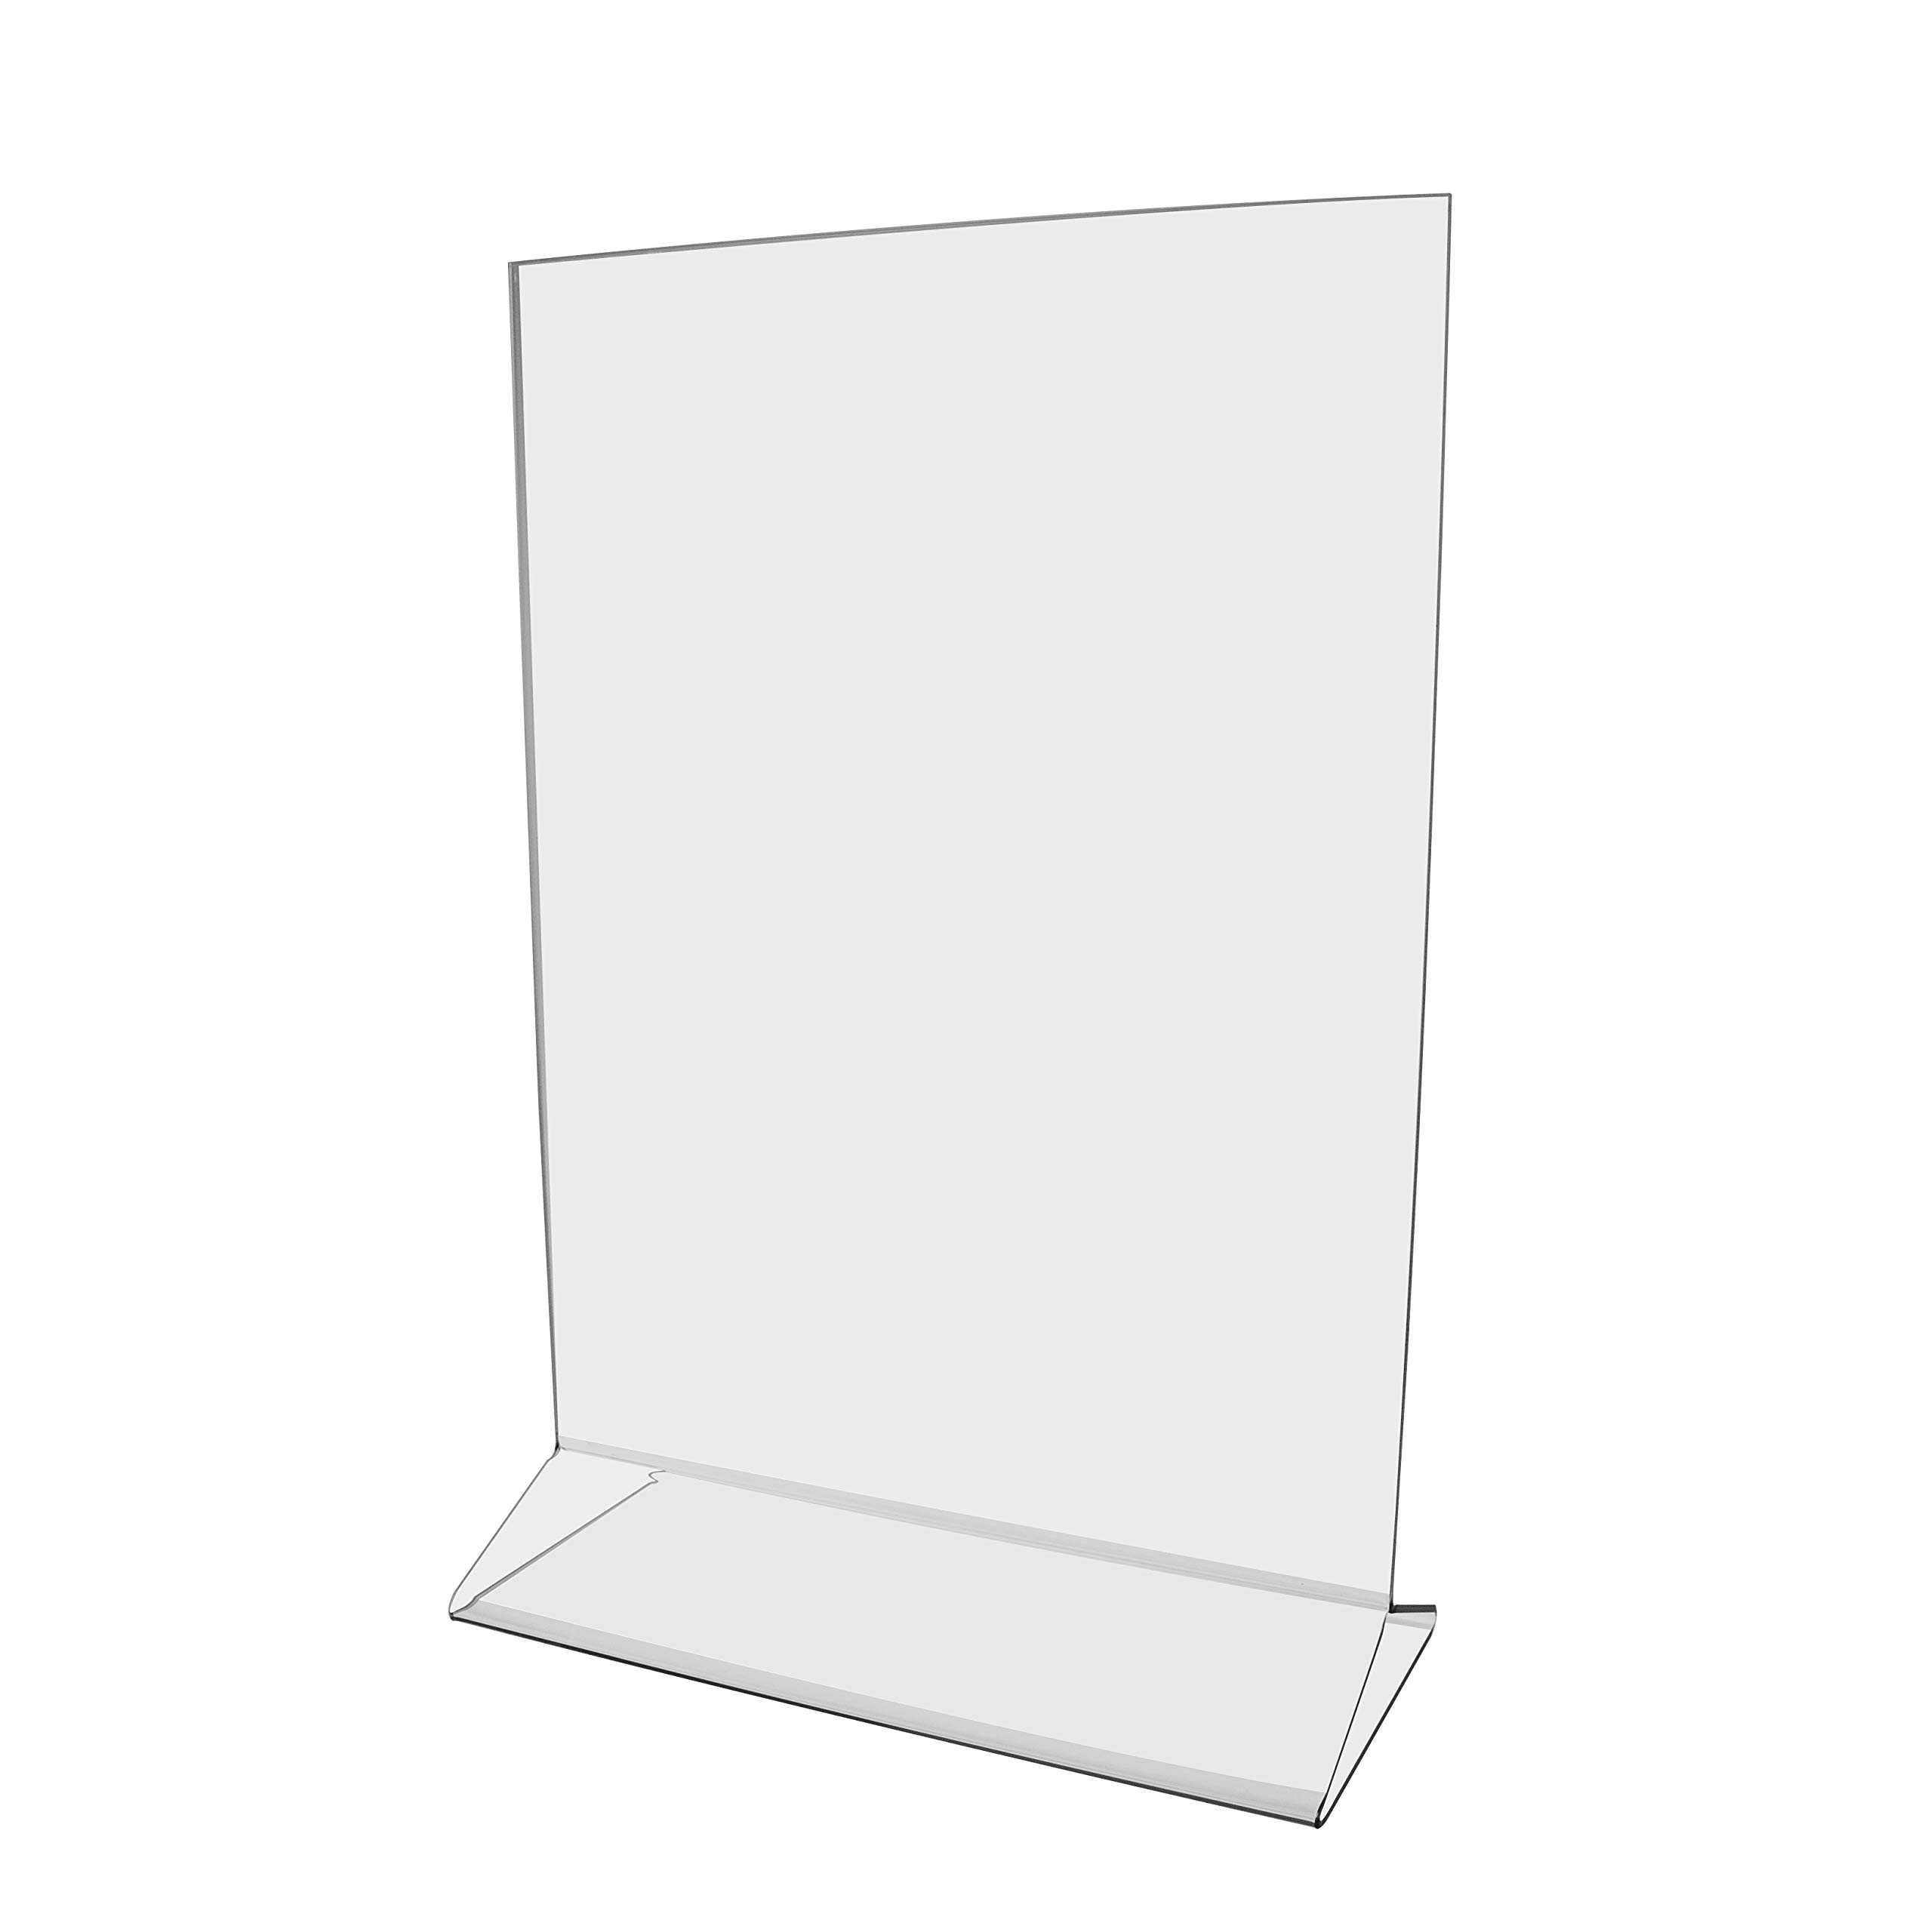 Marketing Holders Literature Flyer Poster Frame Letter Notice Menu Pricing Deli Table Tent Countertop Expo Event Sign Holder Display Stand 8''w x 10''h Pack of 30